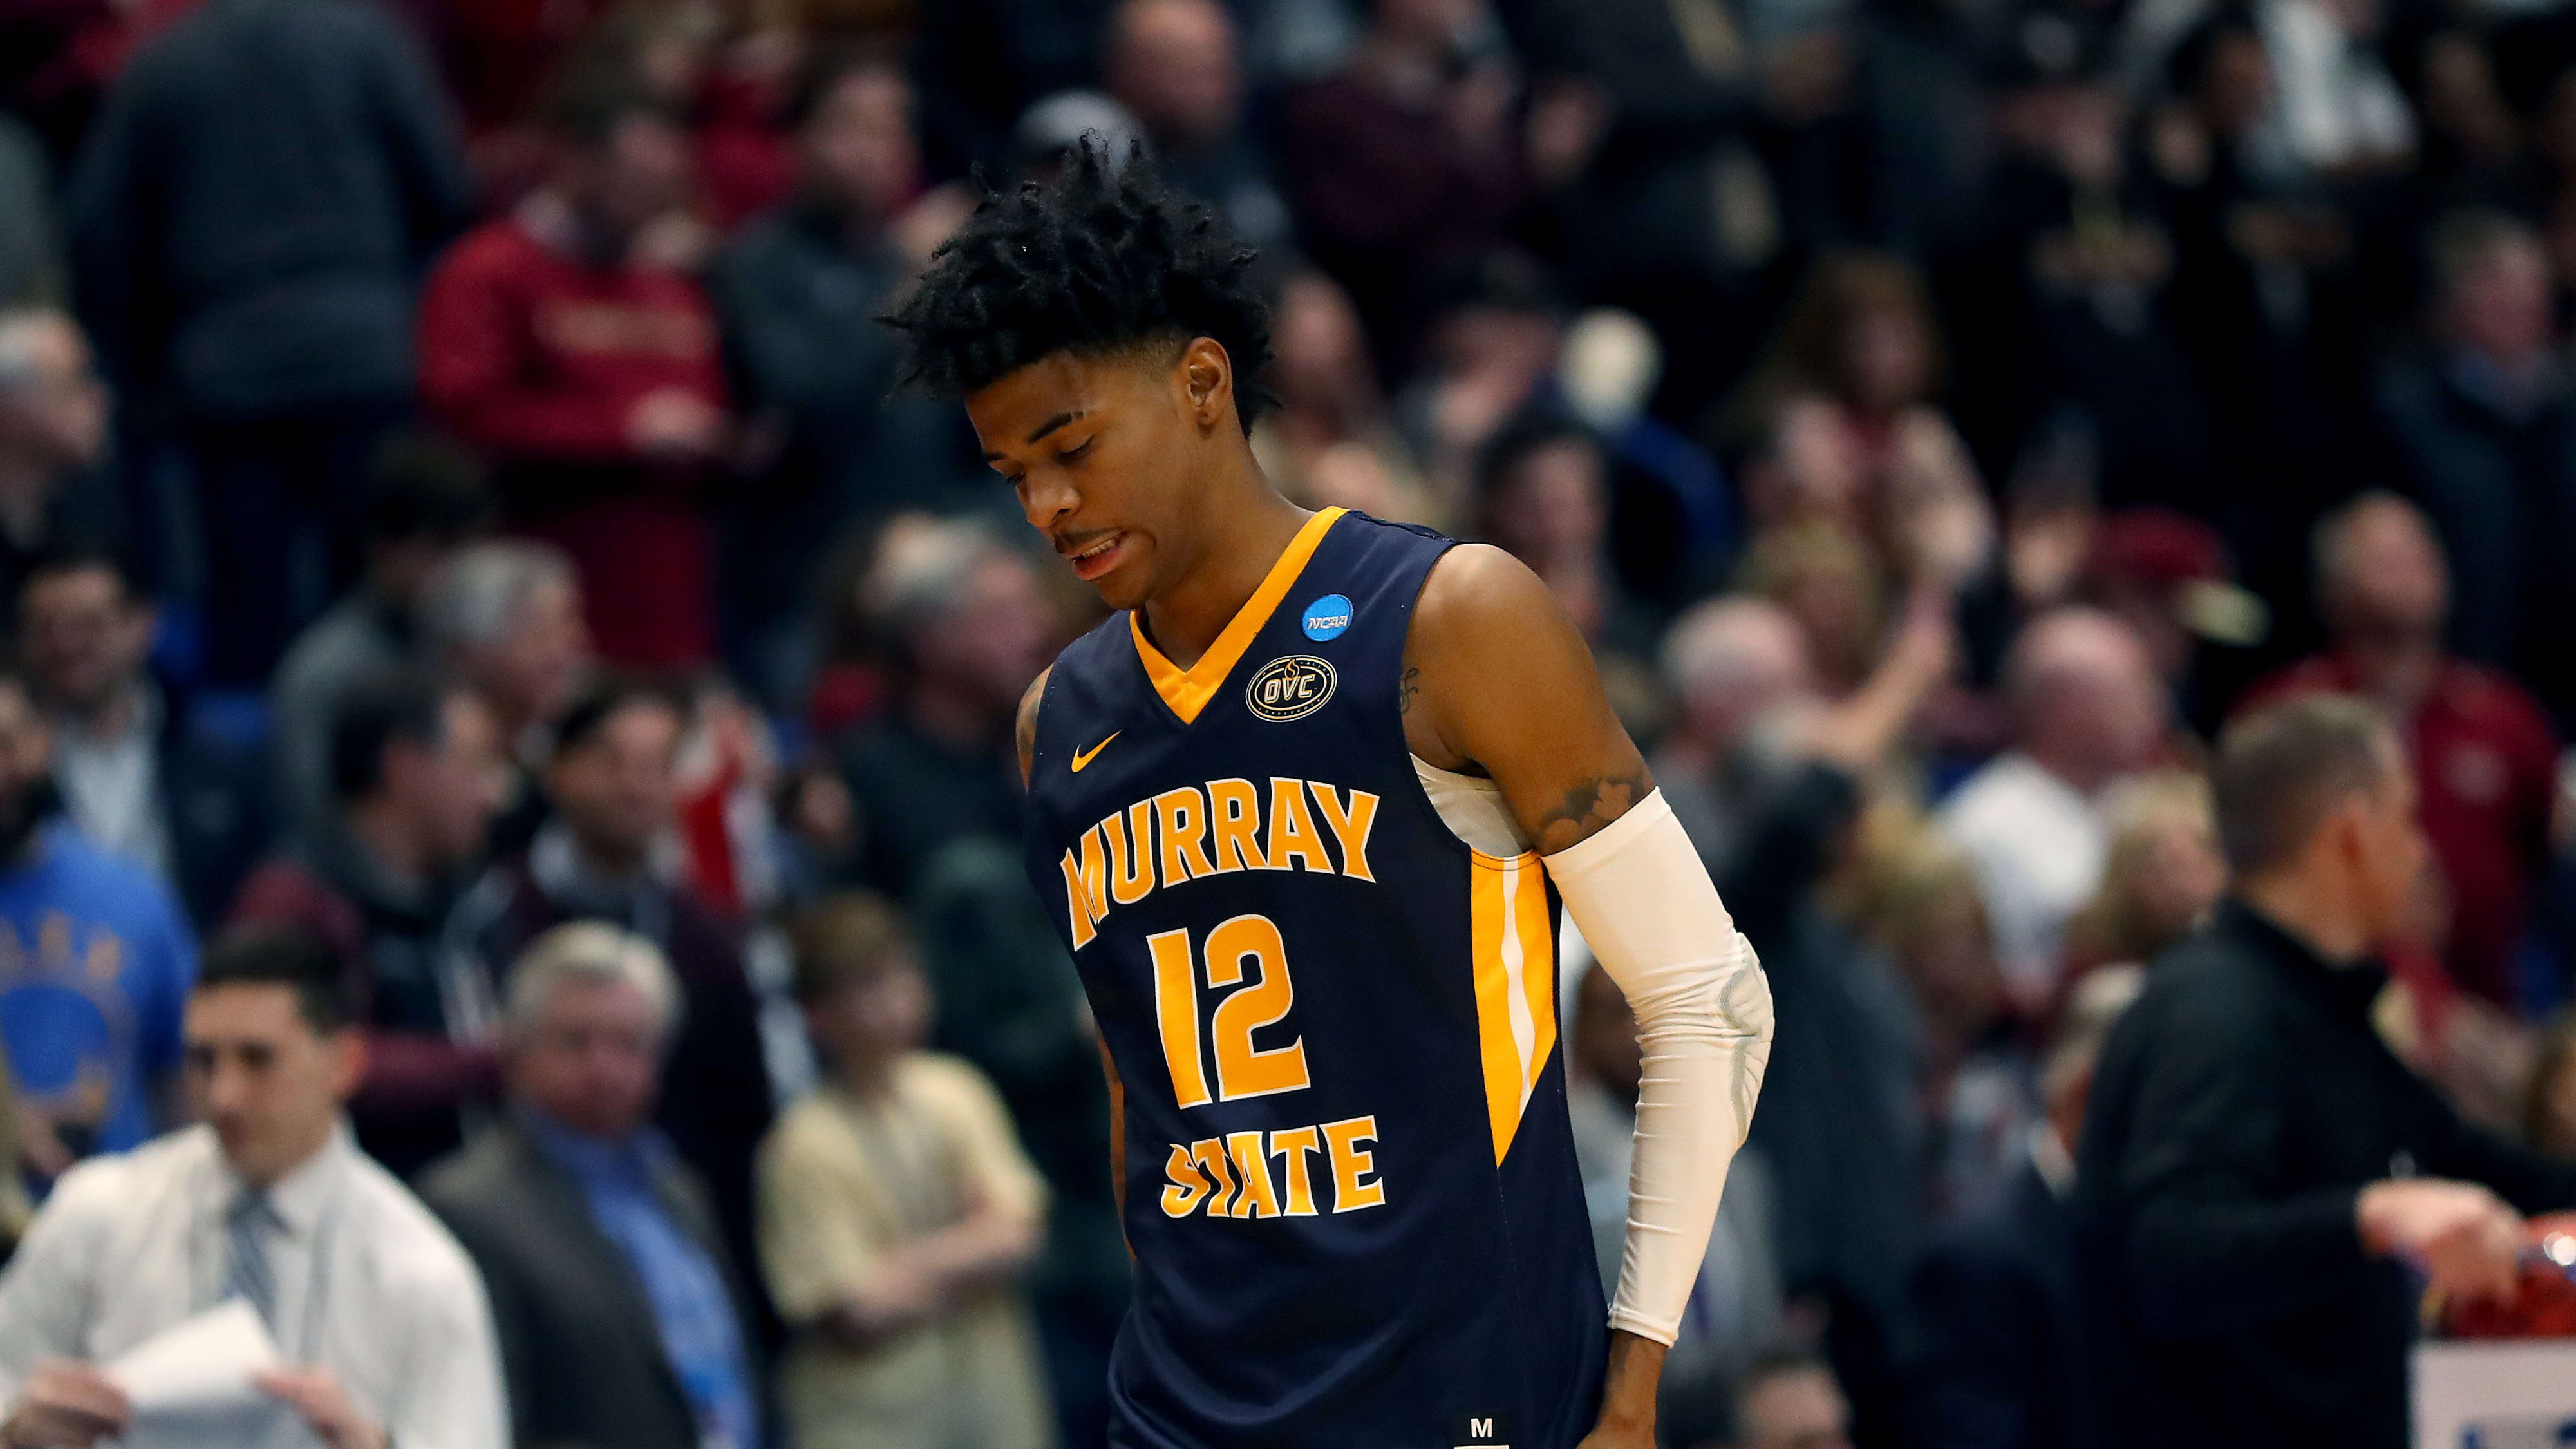 HARTFORD, CONNECTICUT - MARCH 23:  Ja Morant #12 of the Murray State Racers reacts late in the game of his teams loss to the Florida State Seminoles during the second round of the 2019 NCAA Men's Basketball Tournament at XL Center on March 23, 2019 in Hartford, Connecticut. (Photo by Maddie Meyer/Getty Images)